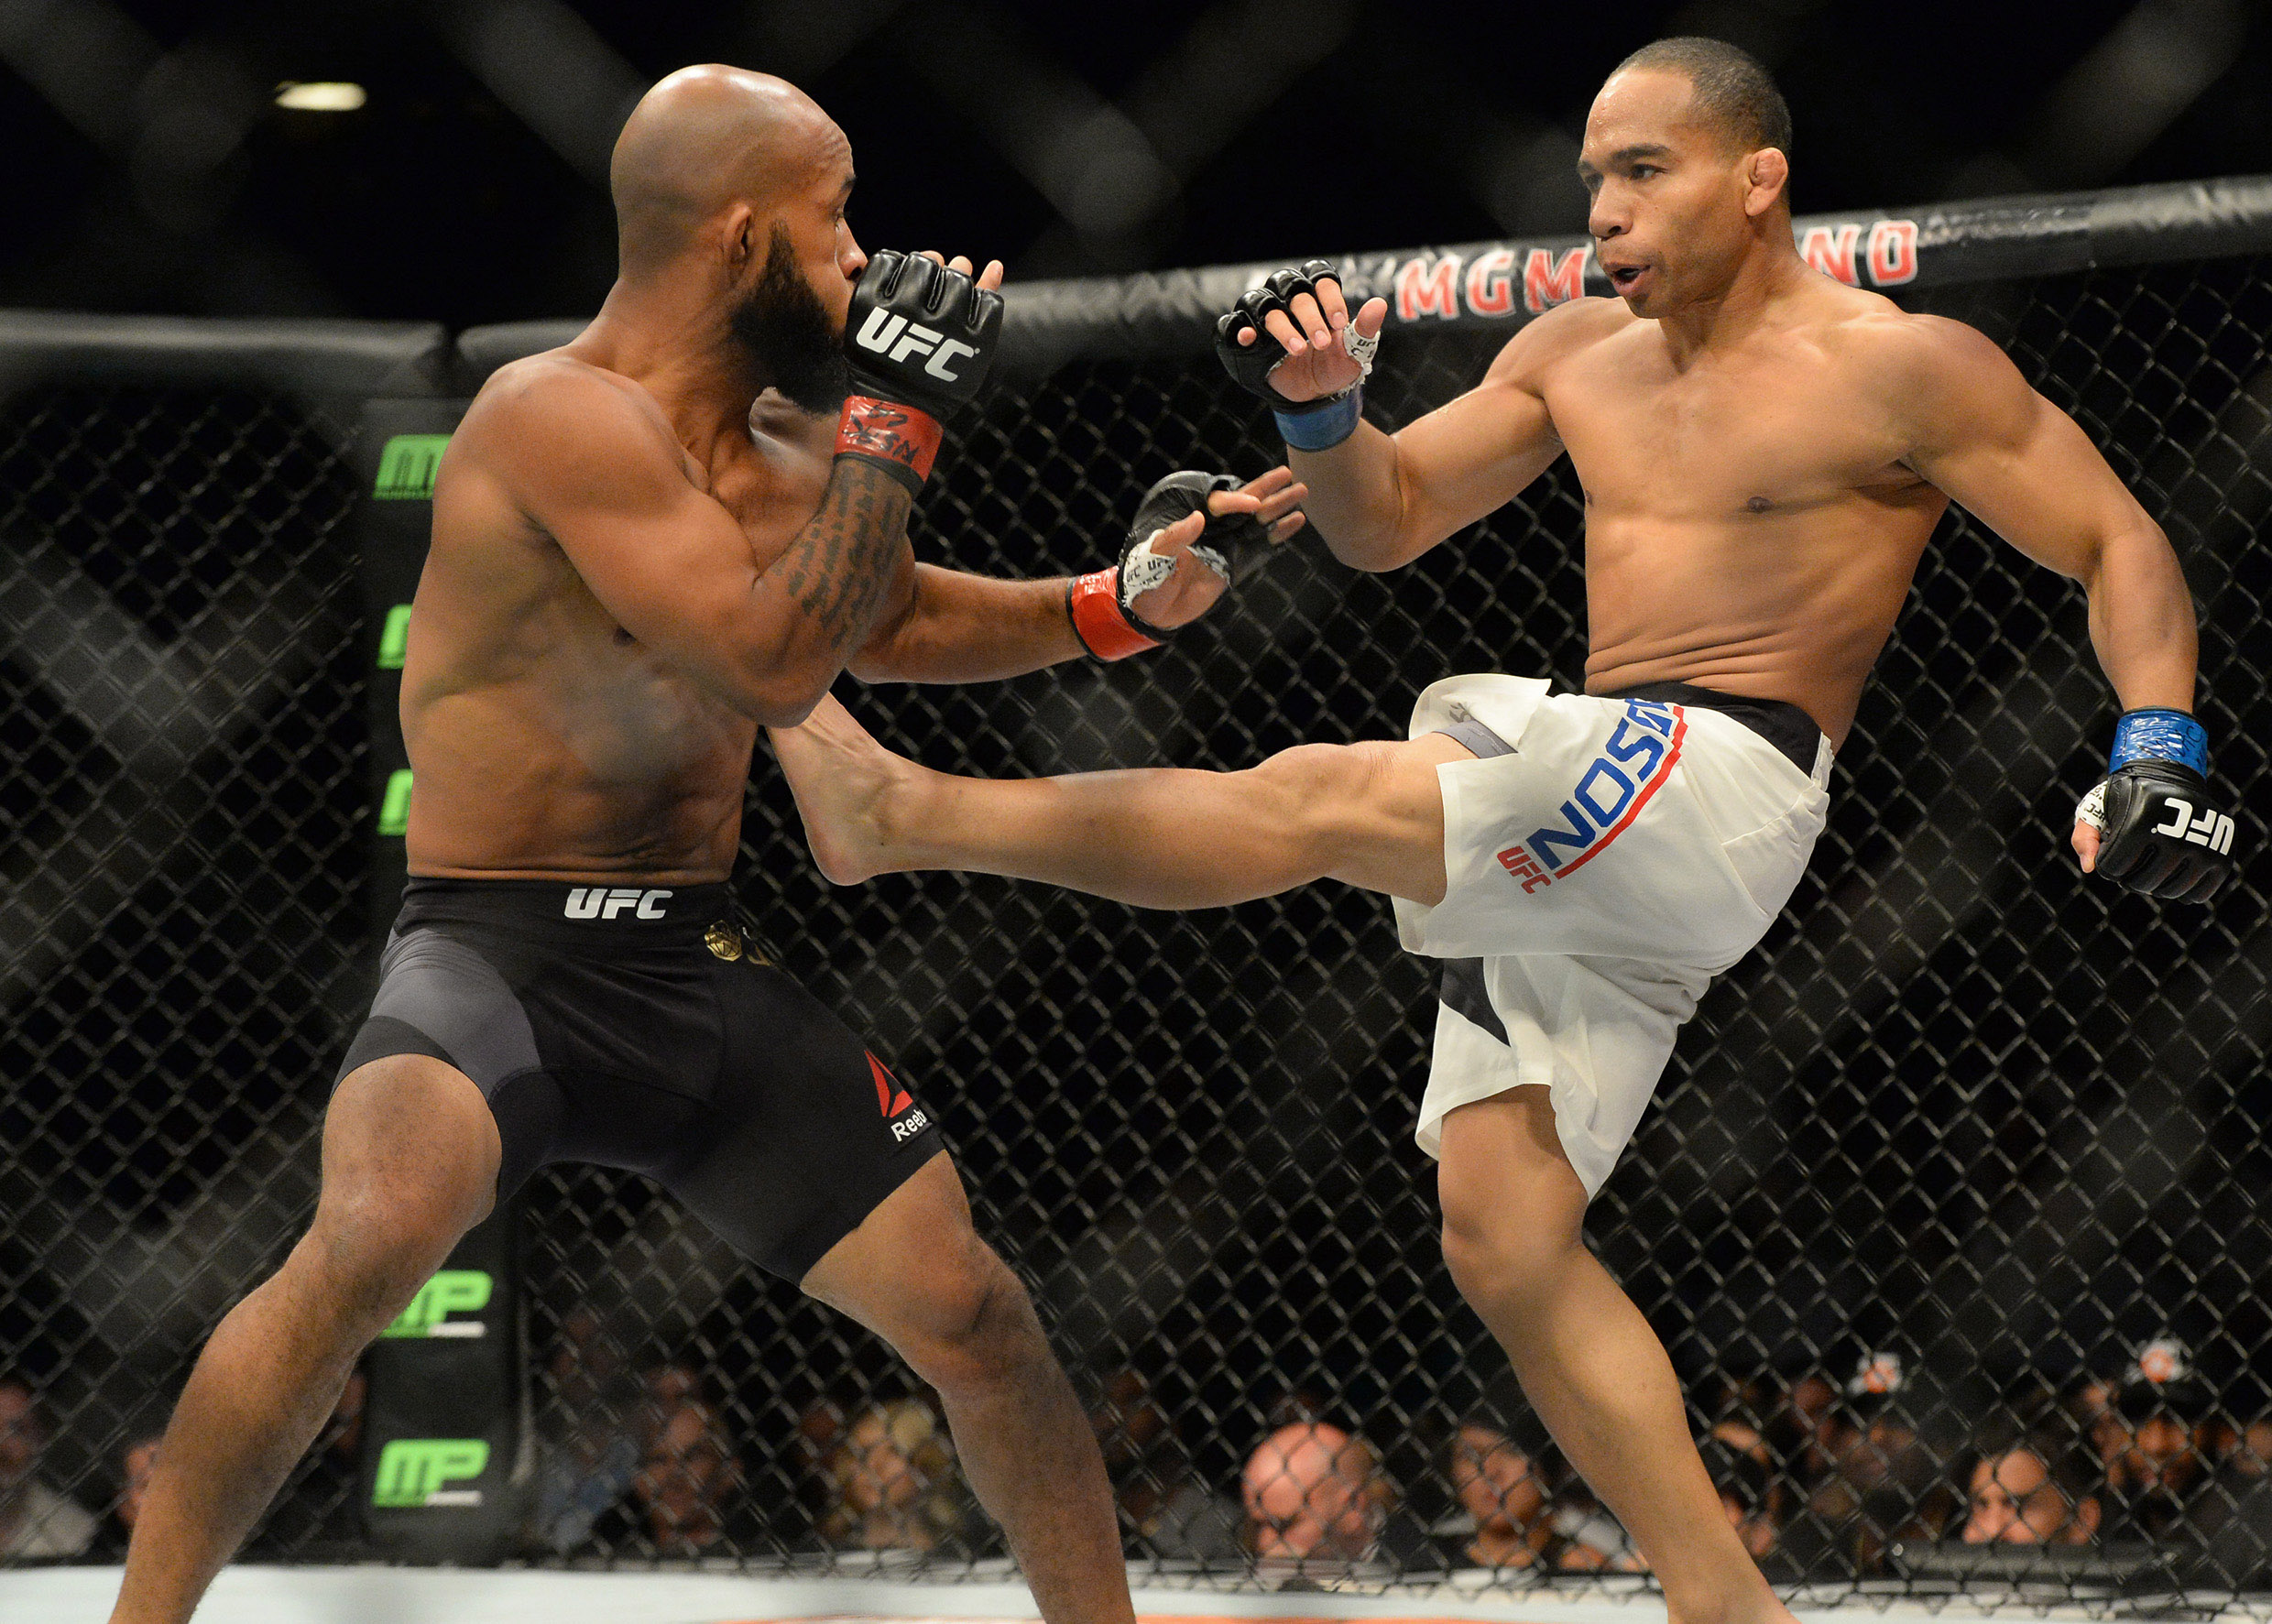 UFC 191 results: Full fight card winners and reaction from Johnson vs. Dodson 2